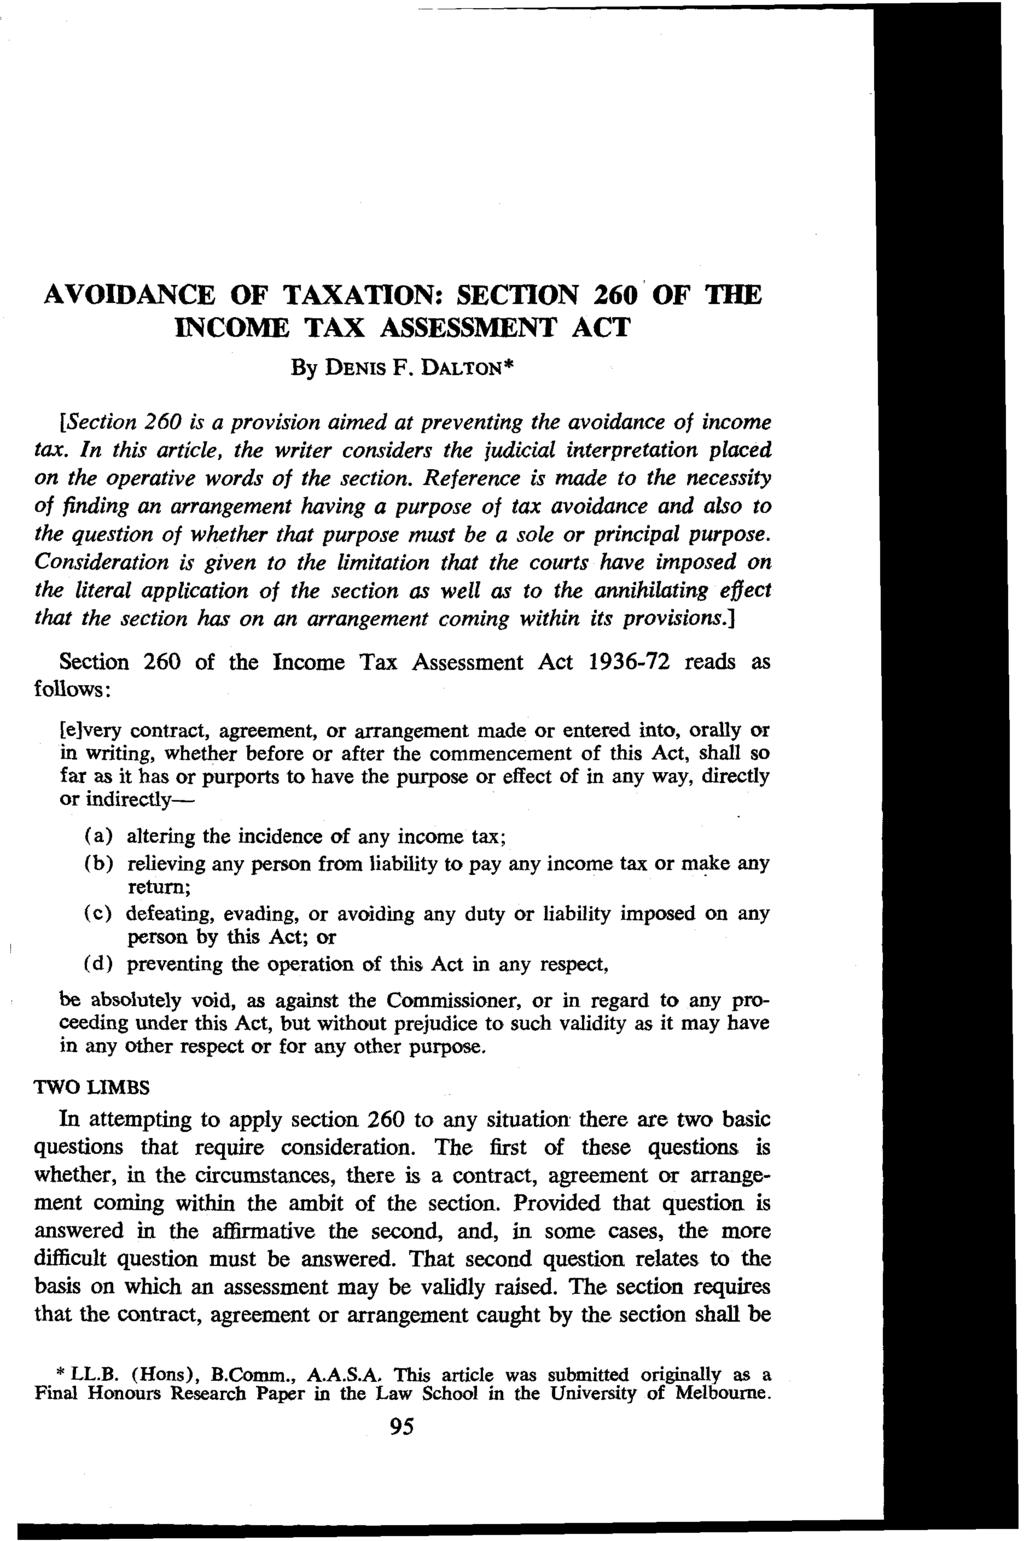 AVOIDANCE OF TAXATION: SECTION 260 OF THE INCOME TAX ASSESSMENT ACT By DENIS F. DALTON* [Section 260 is a provision aimed at preventing the avoidance of income tax.